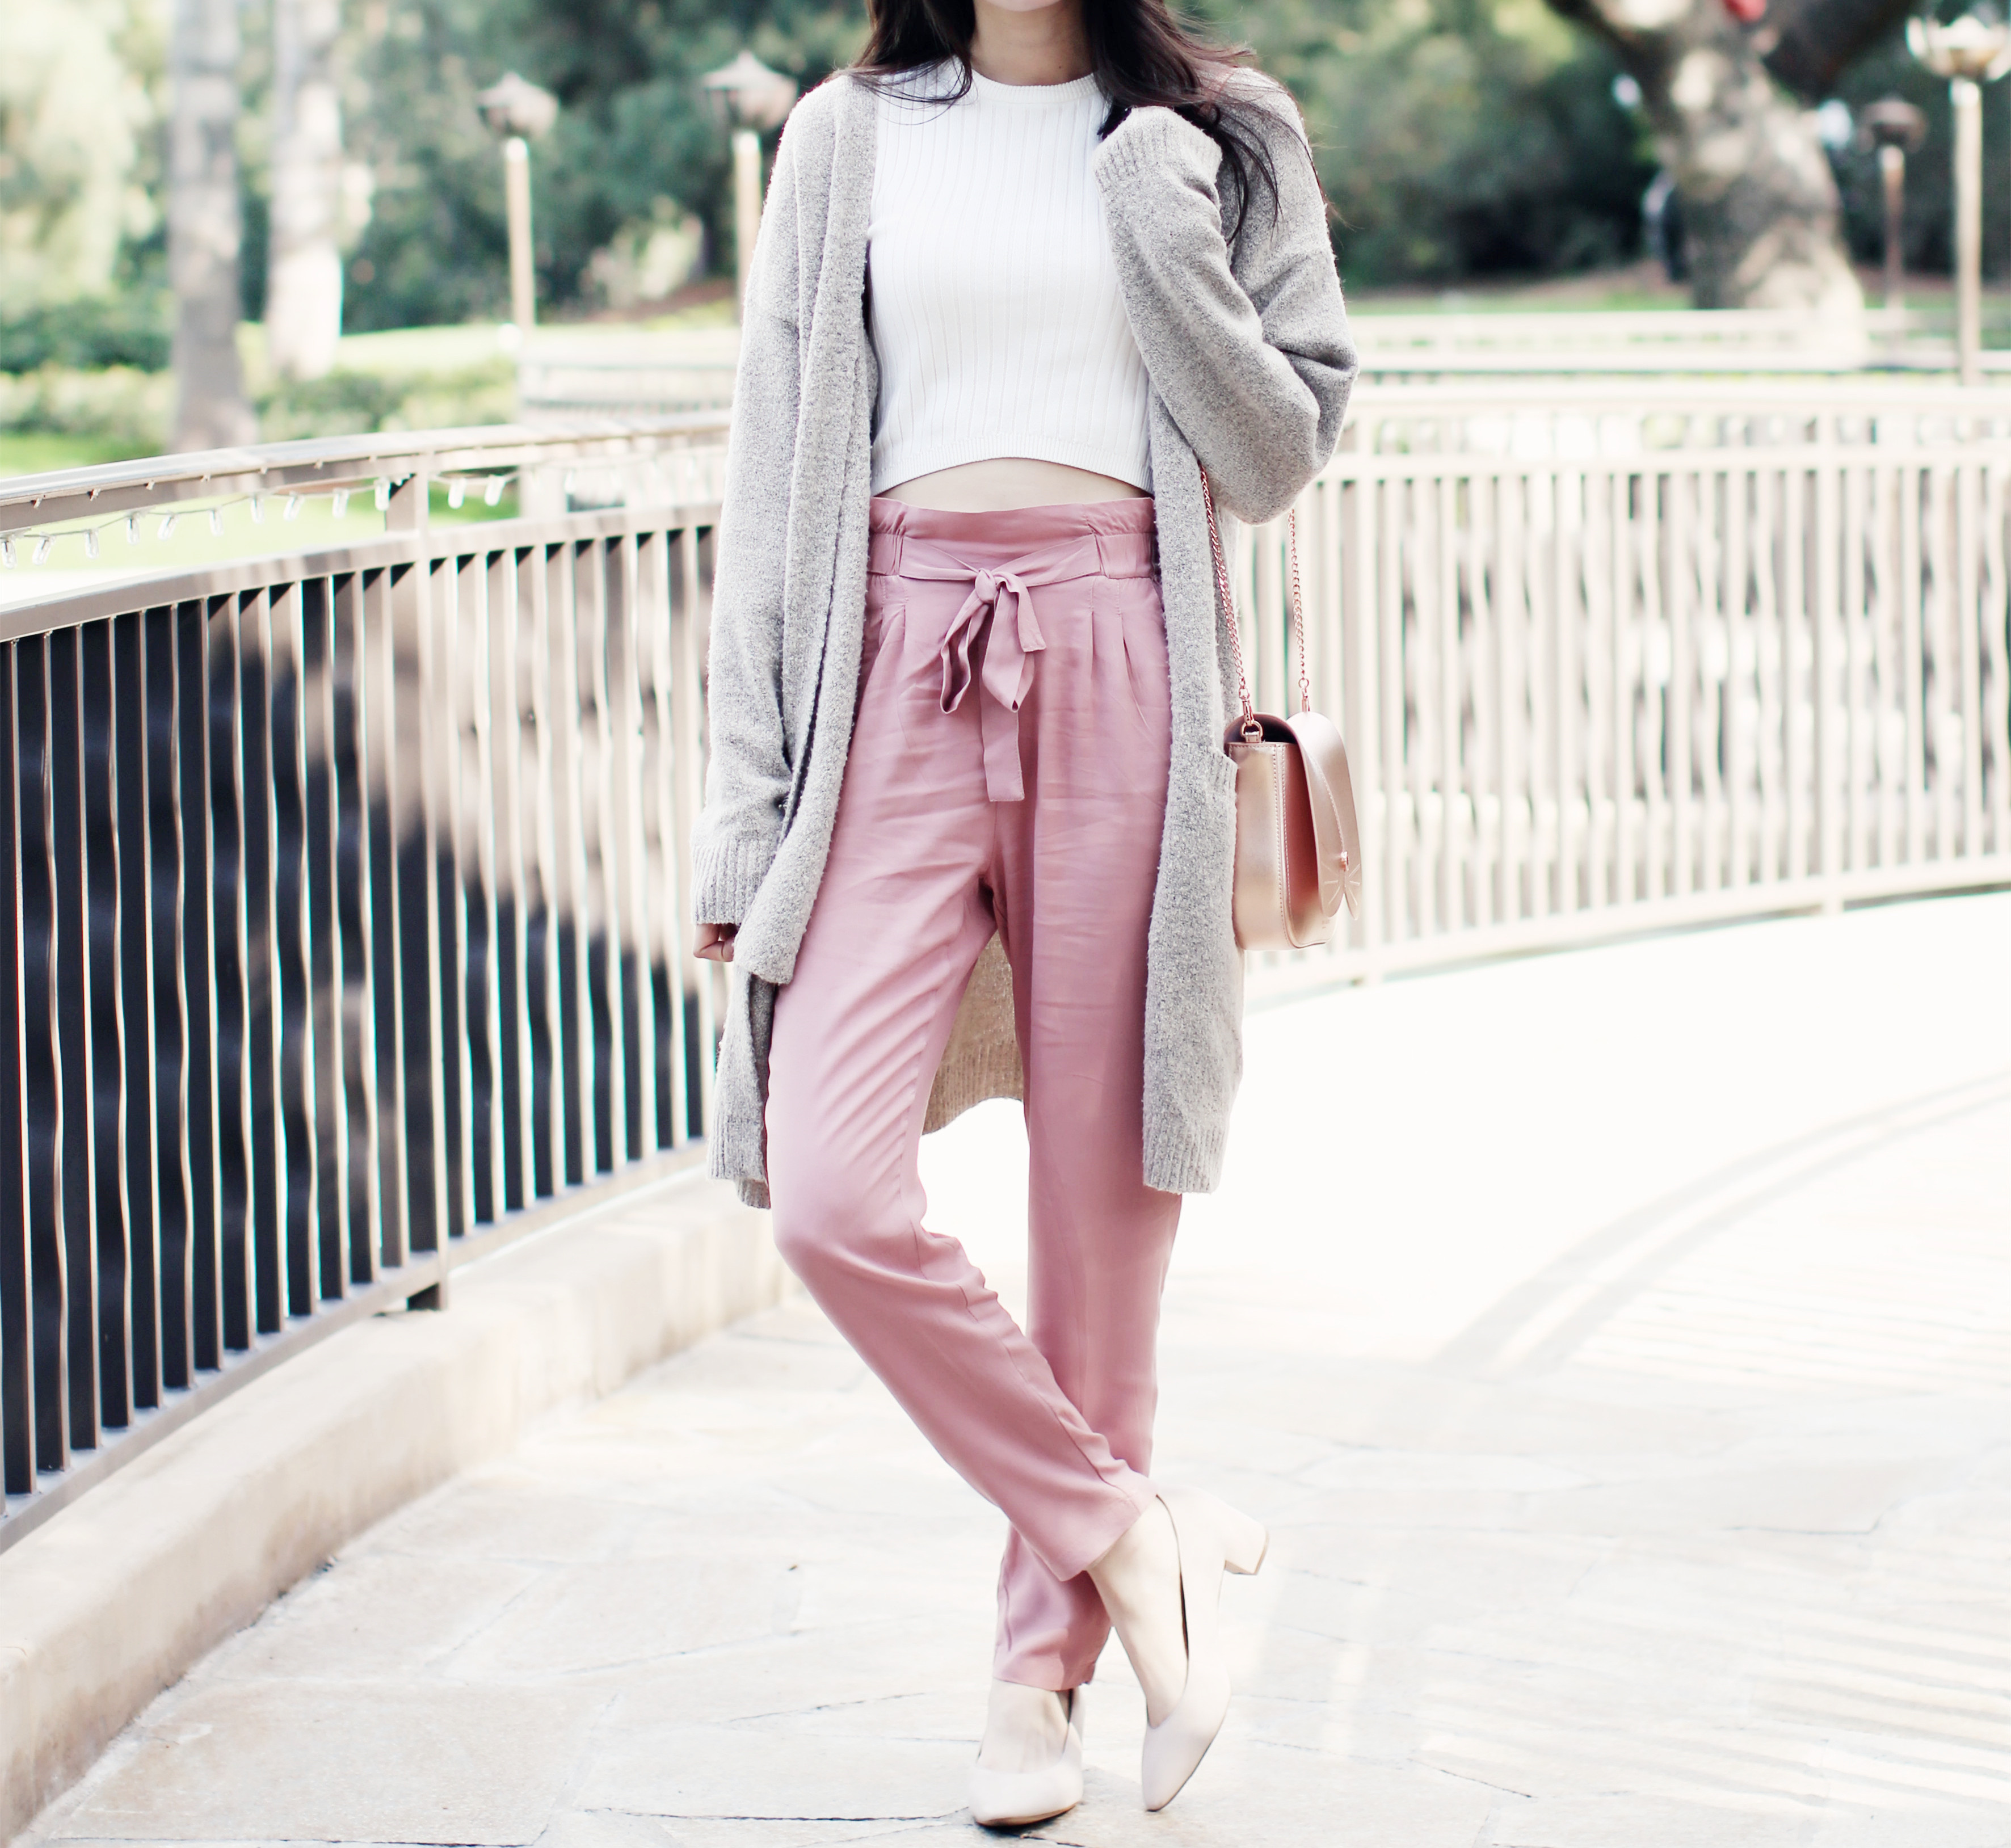 4543-ootd-fashion-style-outfitoftheday-wiwt-streetstyle-forever21-f21xme-anyahindmarch-ninewest-trousers-elizabeeetht-clothestoyouuu